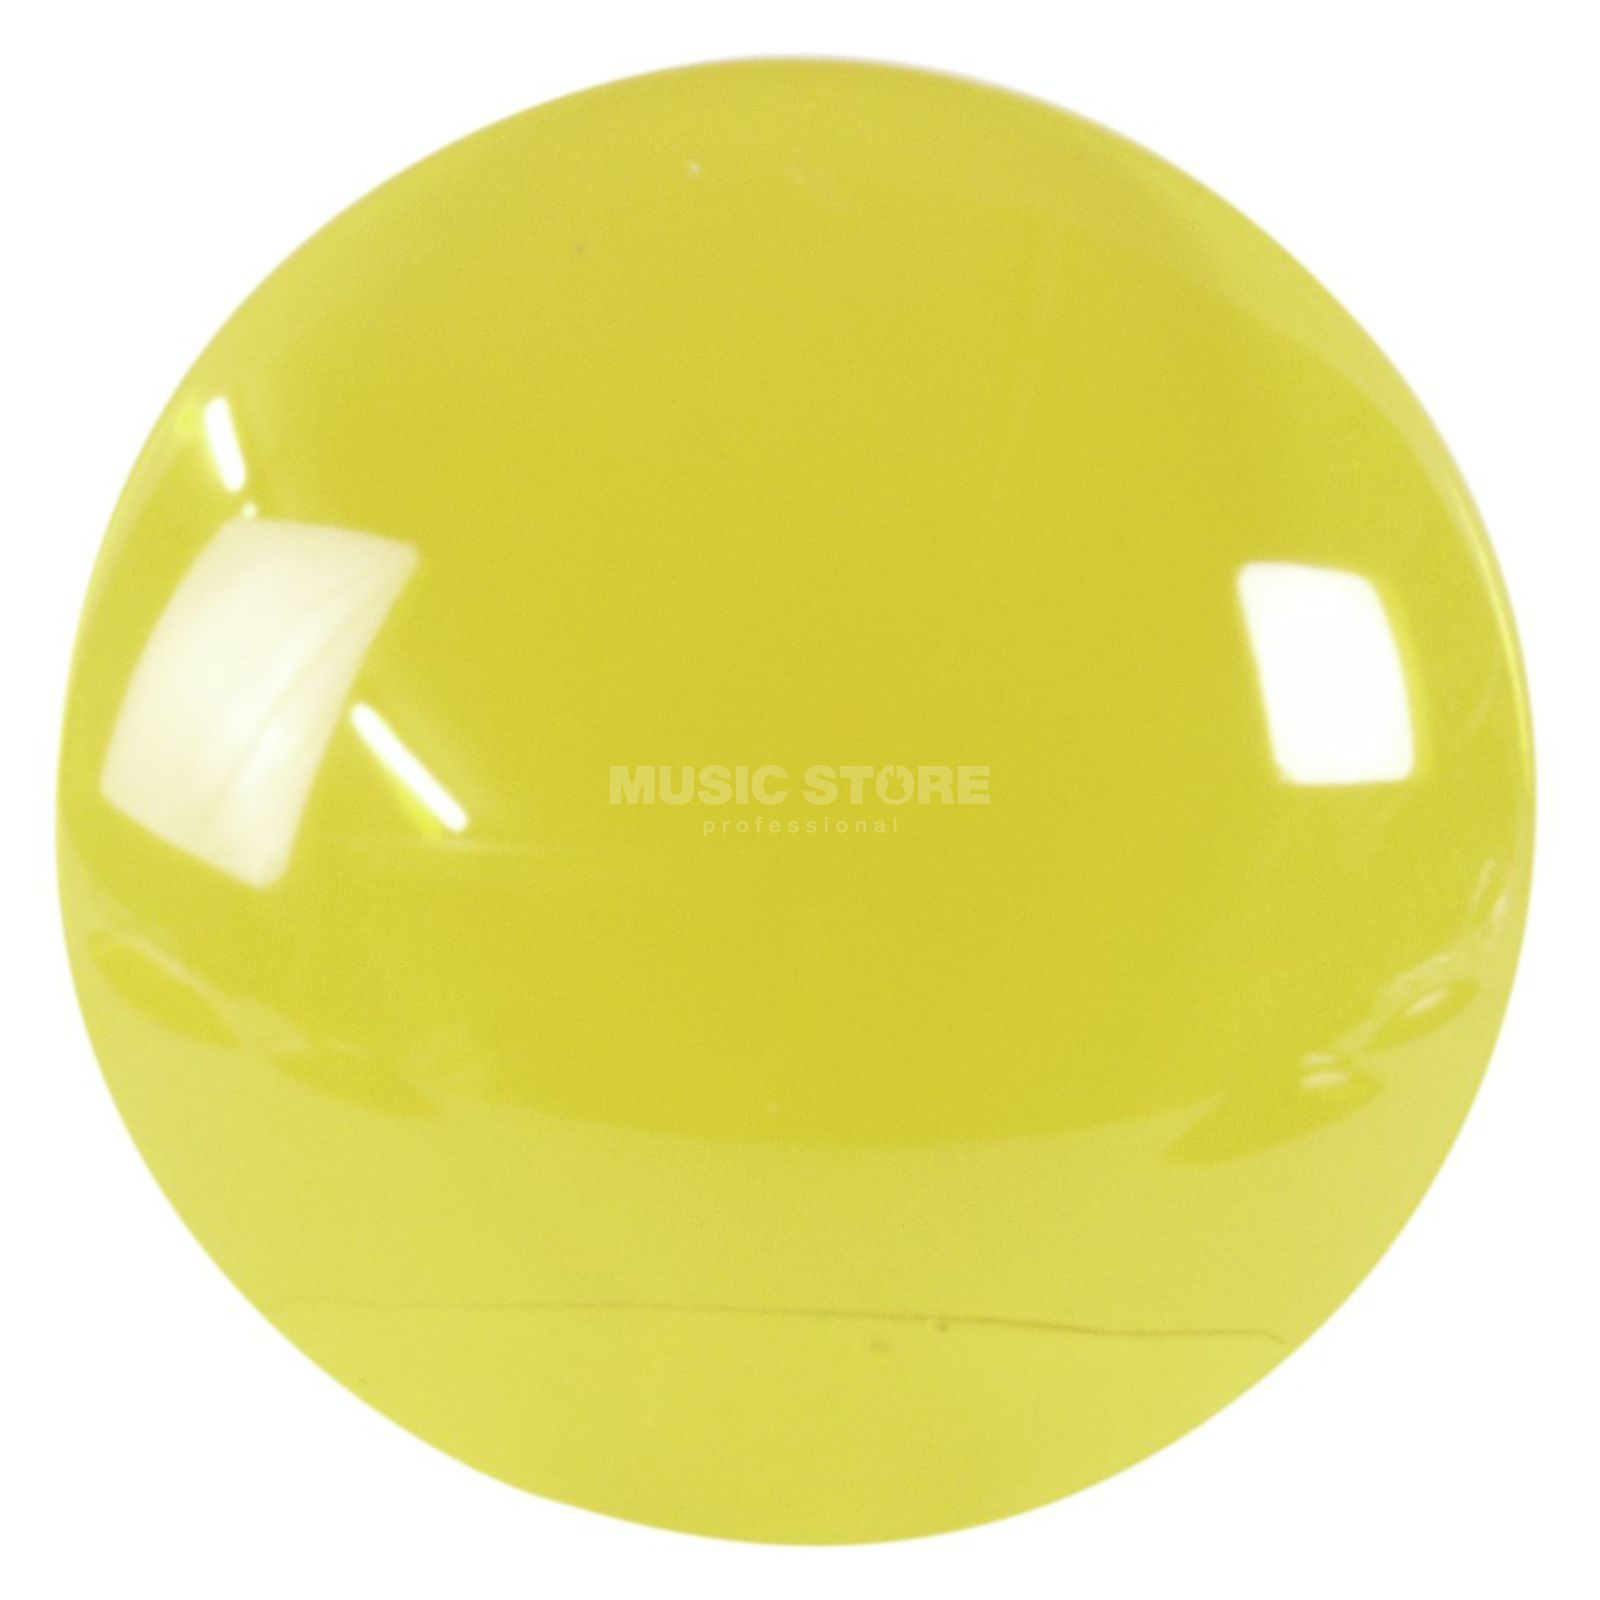 Eurolite Par 36 Color Cap Yellow for Par 36 Product Image